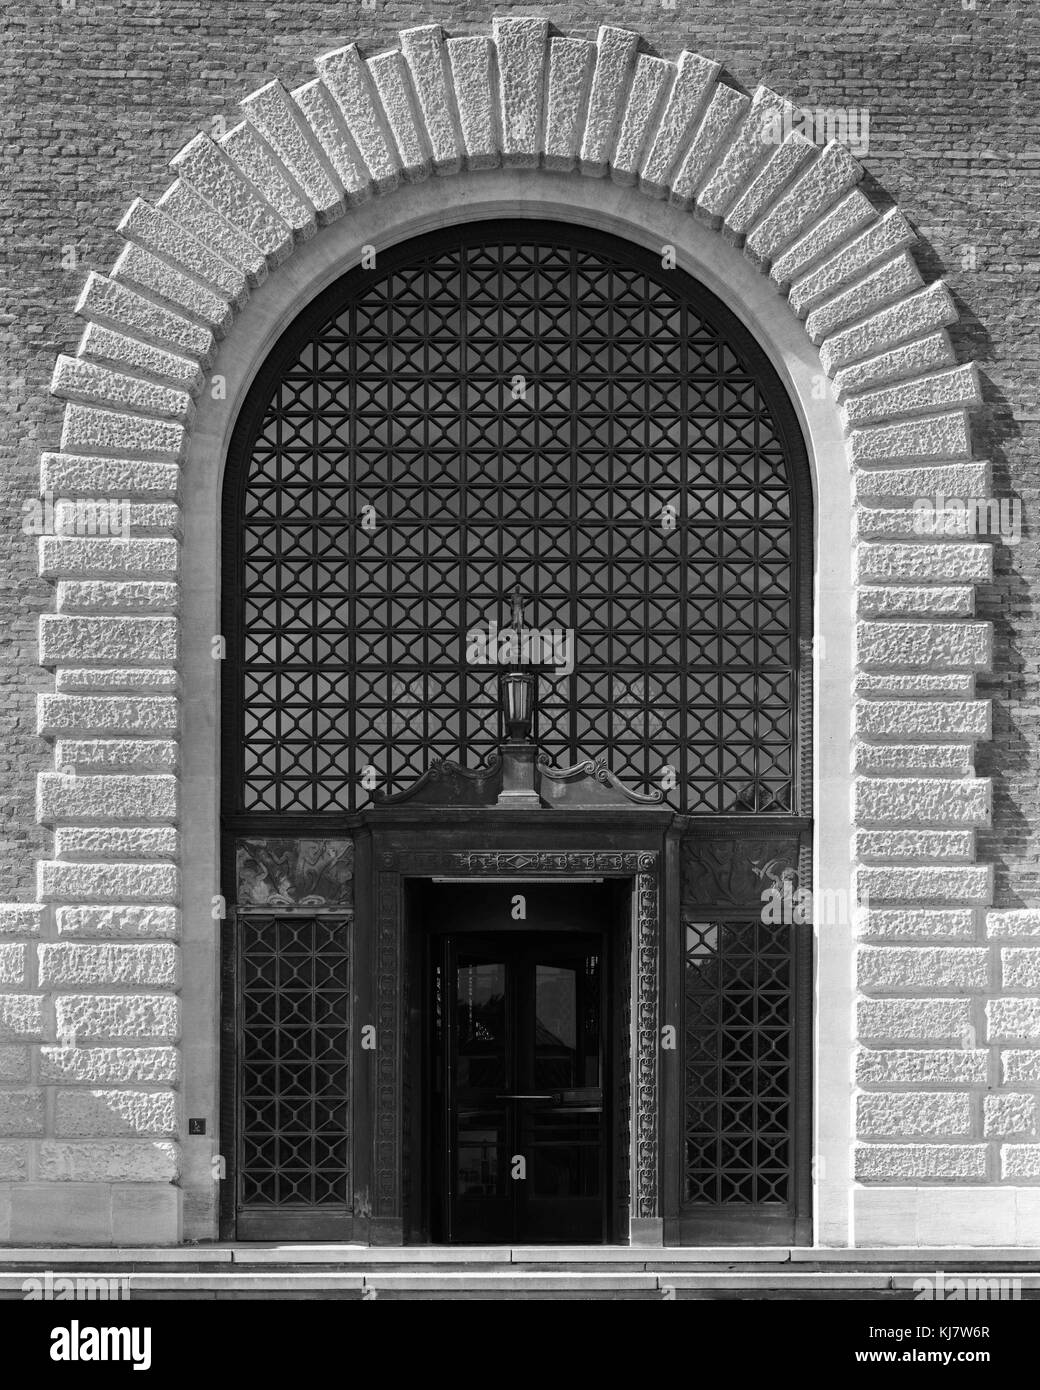 Main entrance of Cambridge University Library off West Road - Stock Image